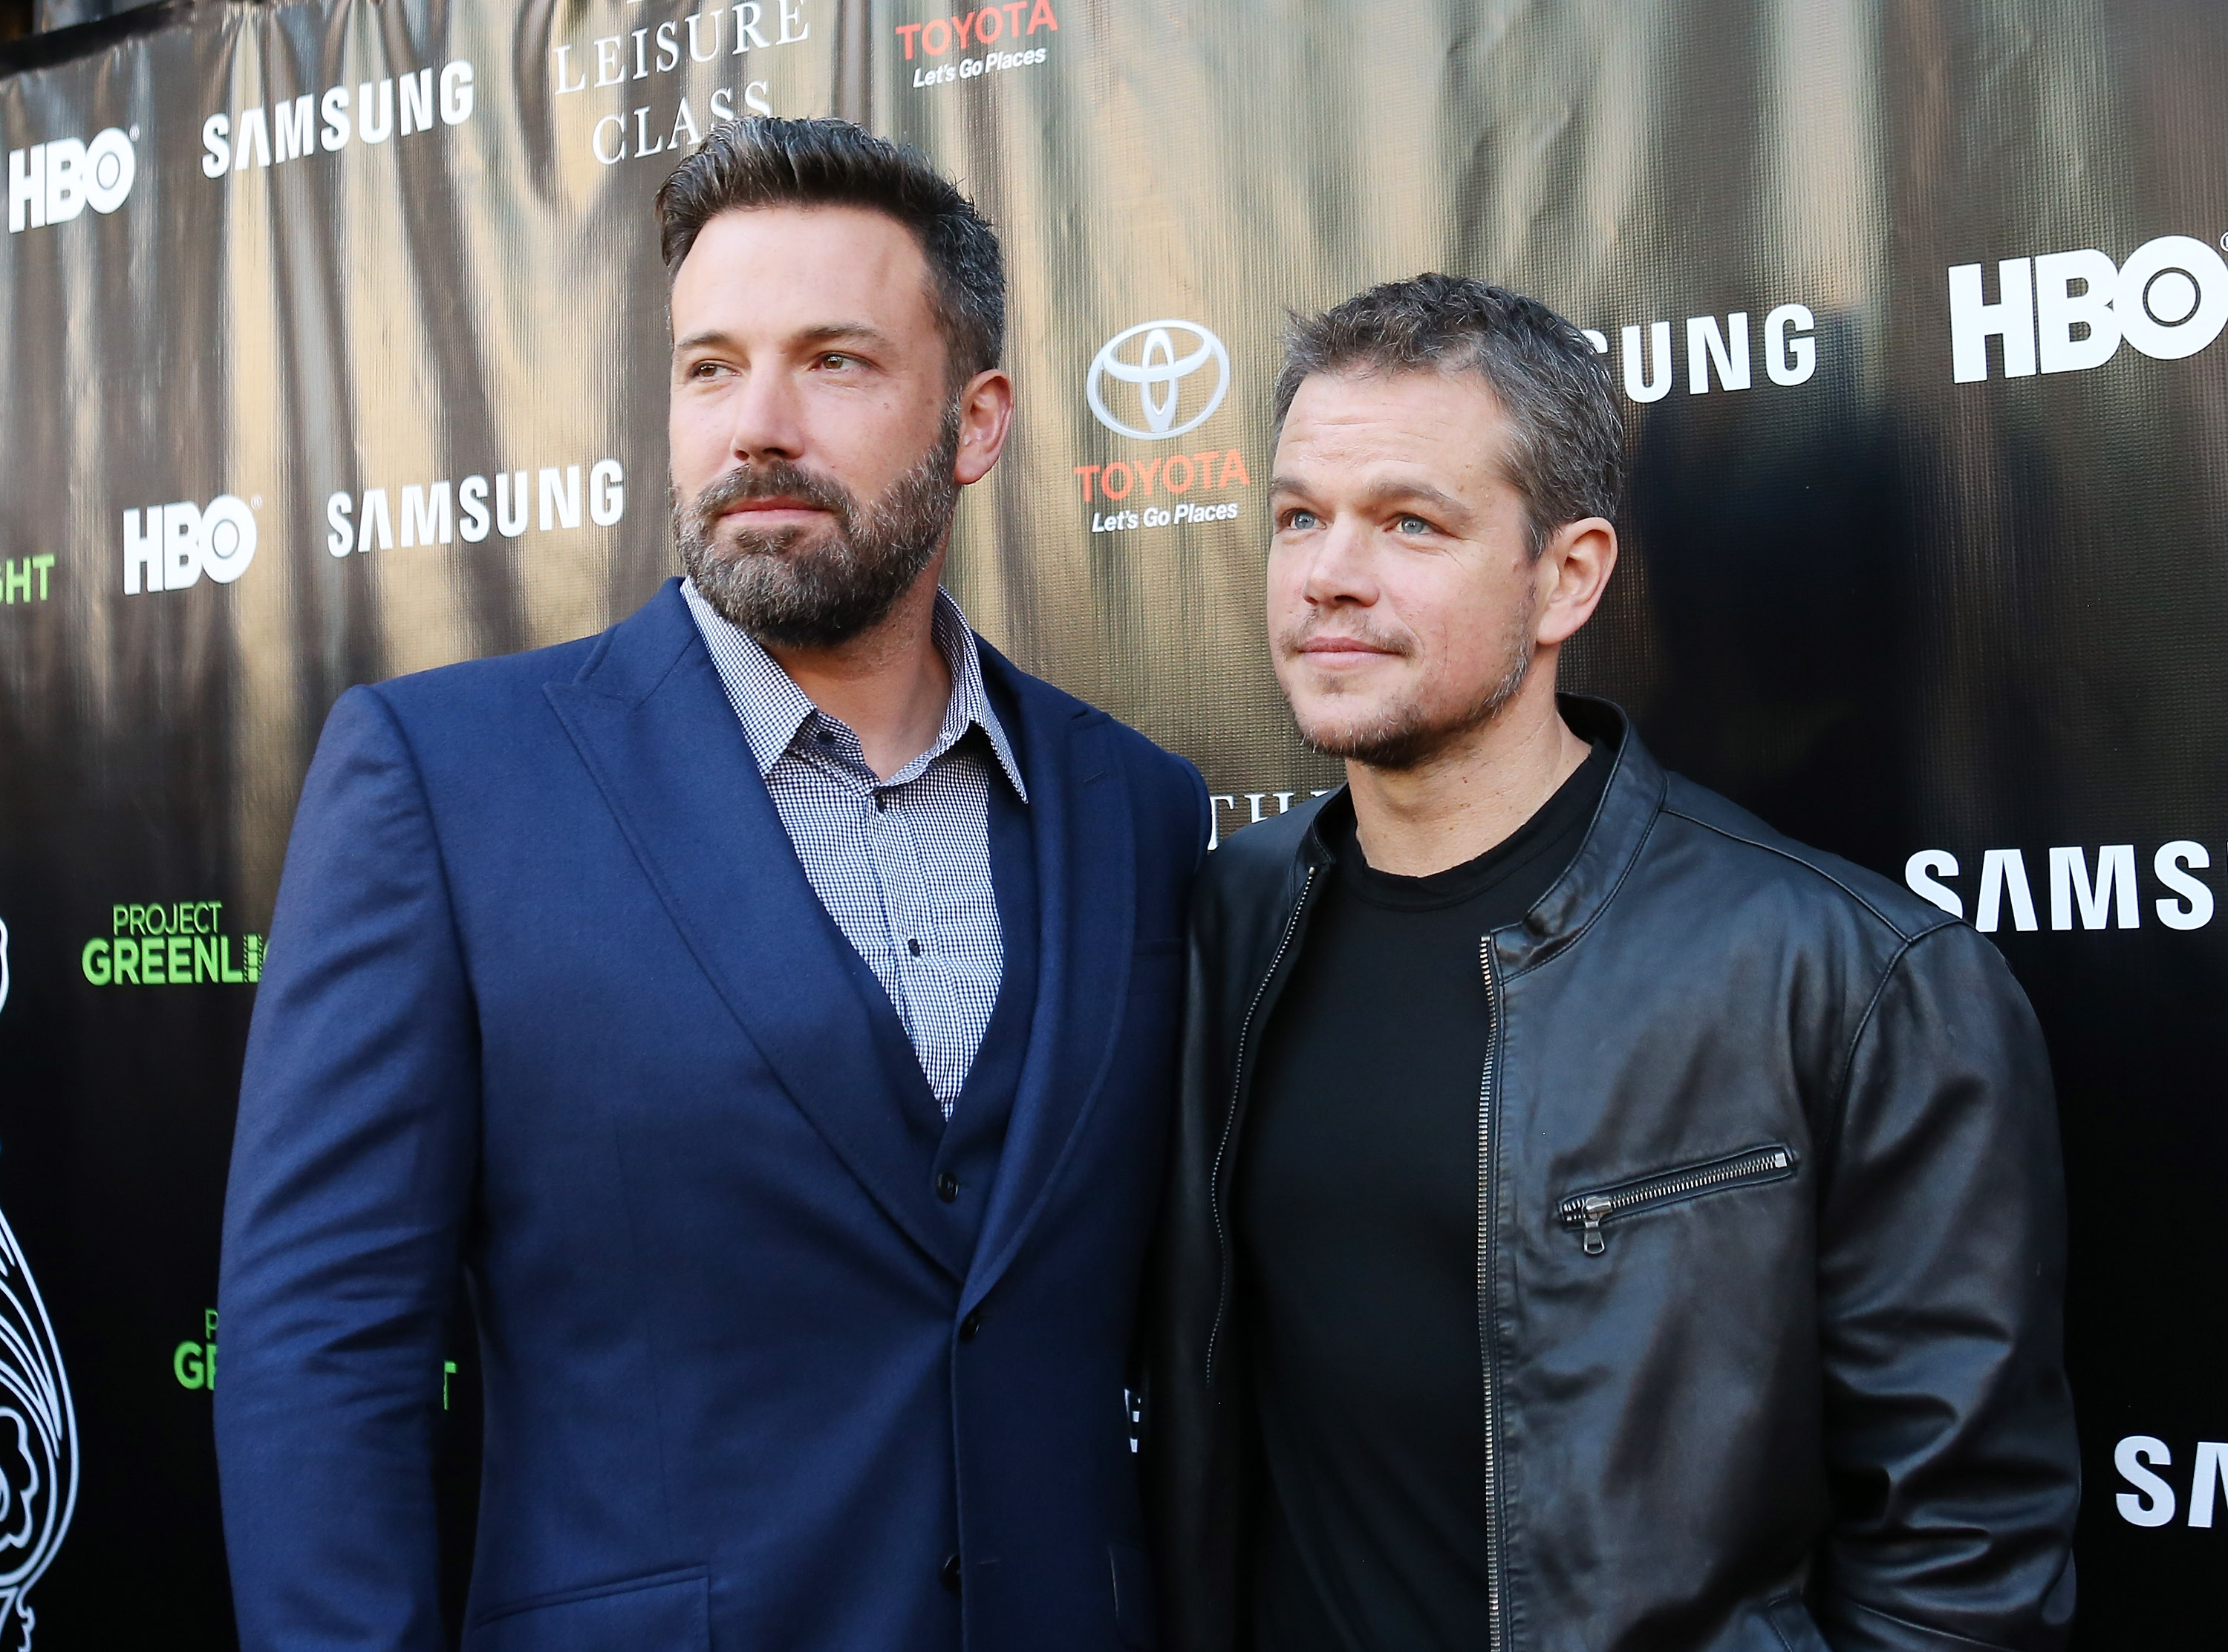 LOS ANGELES, CA - AUGUST 10:  Ben Affleck (L) and Matt Damon arrive at HBO presents The Project Greenlight season 4 winning film  The Leisure Class  held at The Theatre - The Ace Hotel on August 10, 2015 in Los Angeles, California.  (Photo by Michael Tran/FilmMagic)